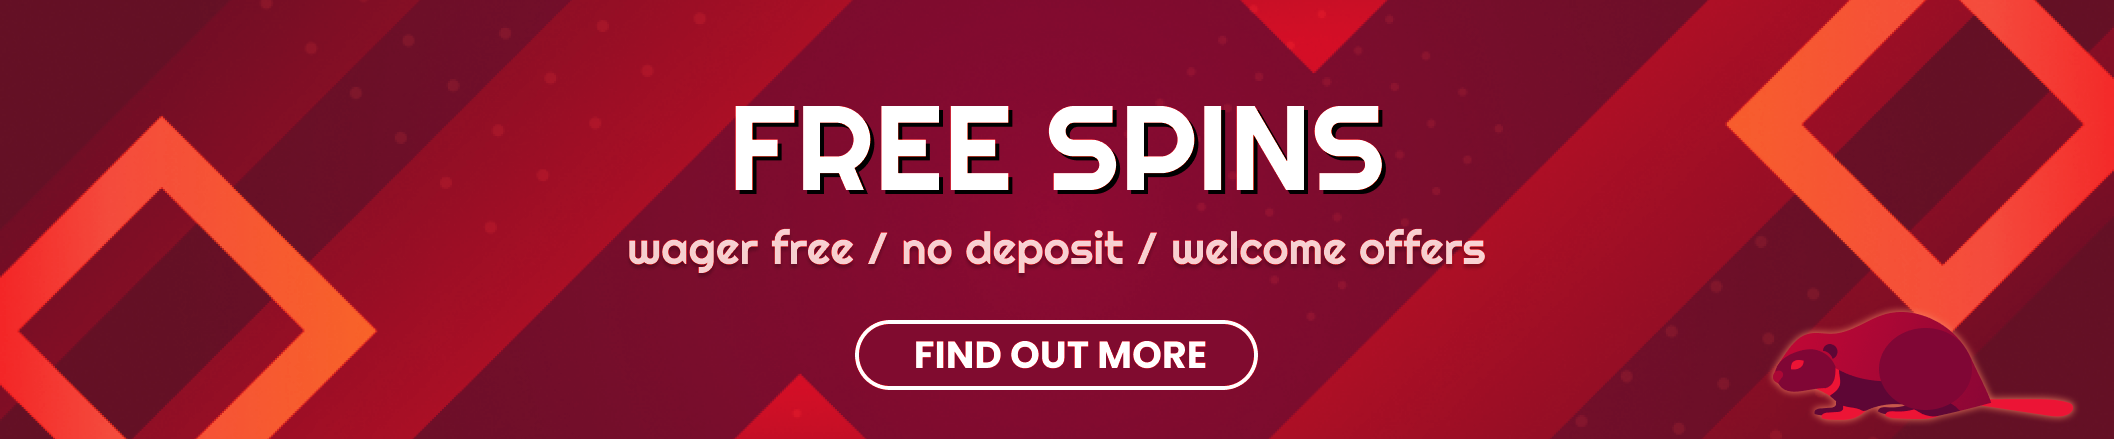 Free Spins: wager free, no deposit, welcome offers